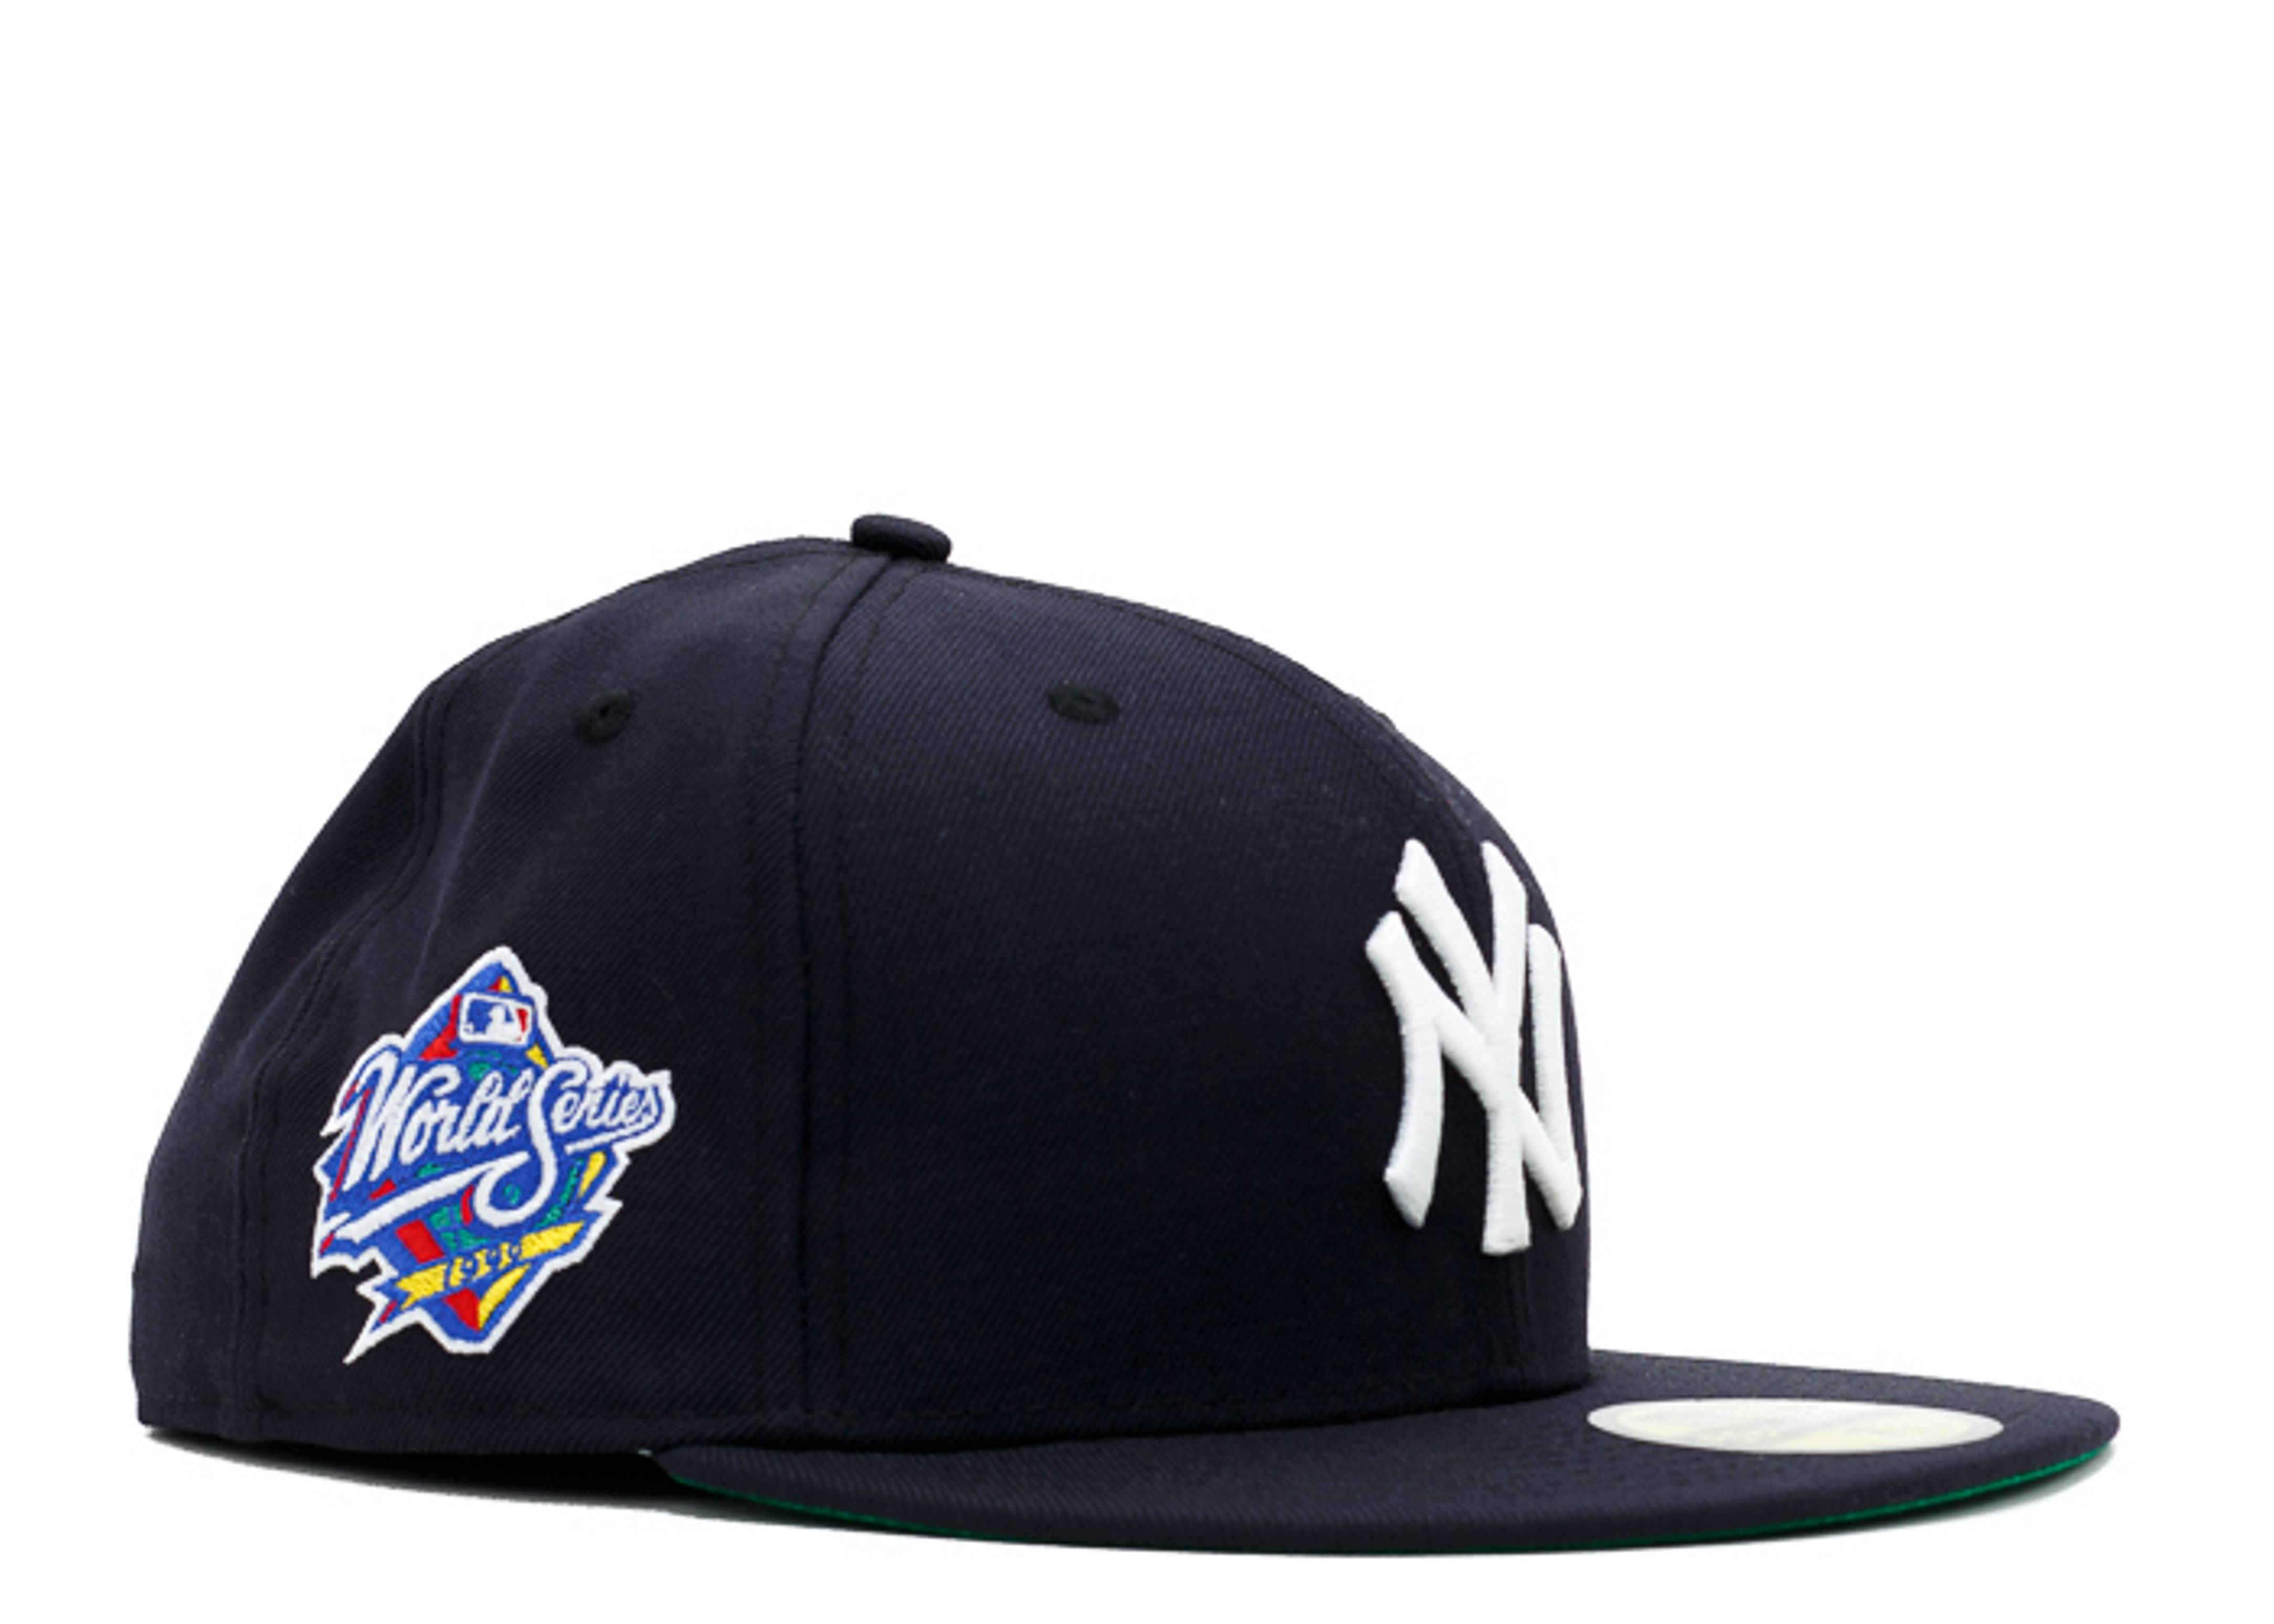 8d1edc4c5dd76 New York Yankees Fitted